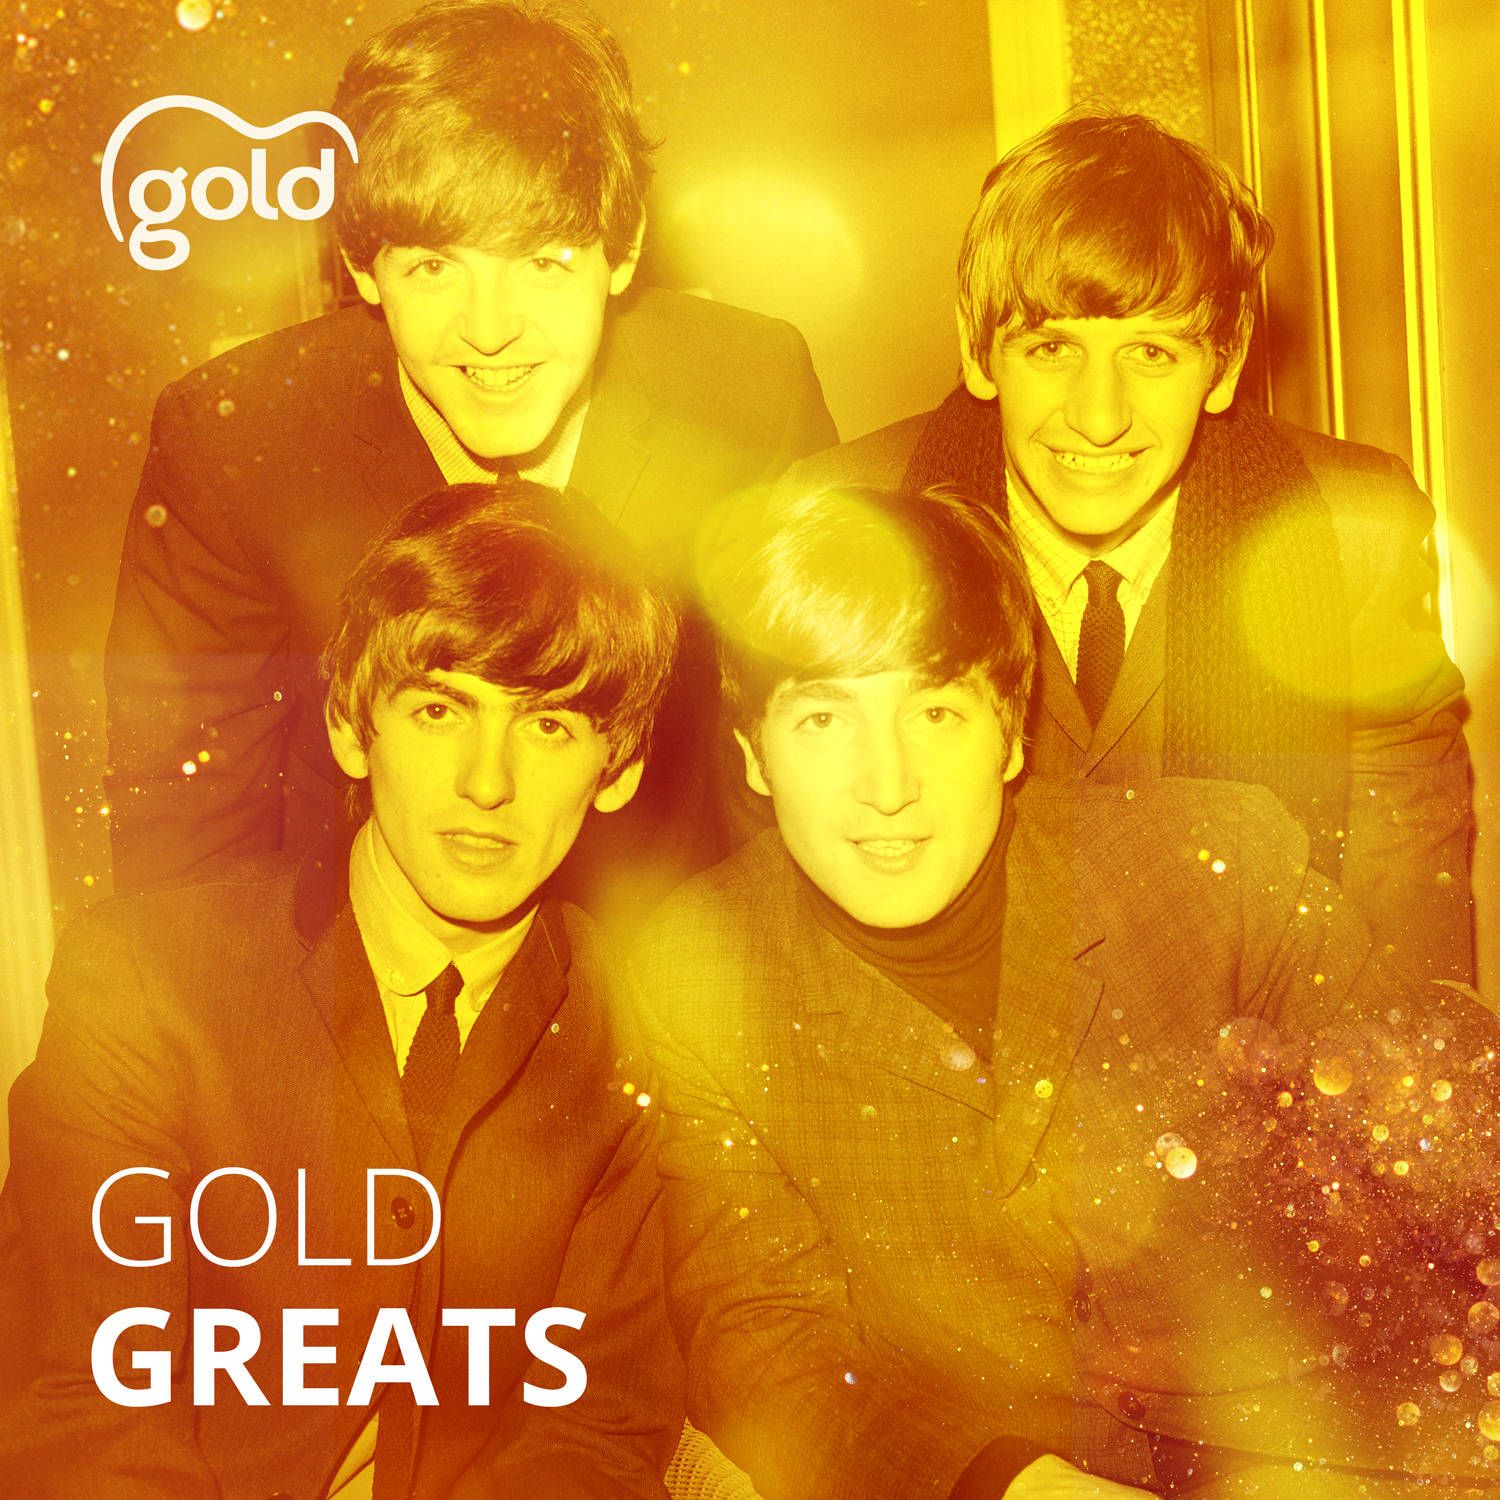 Gold Greats image